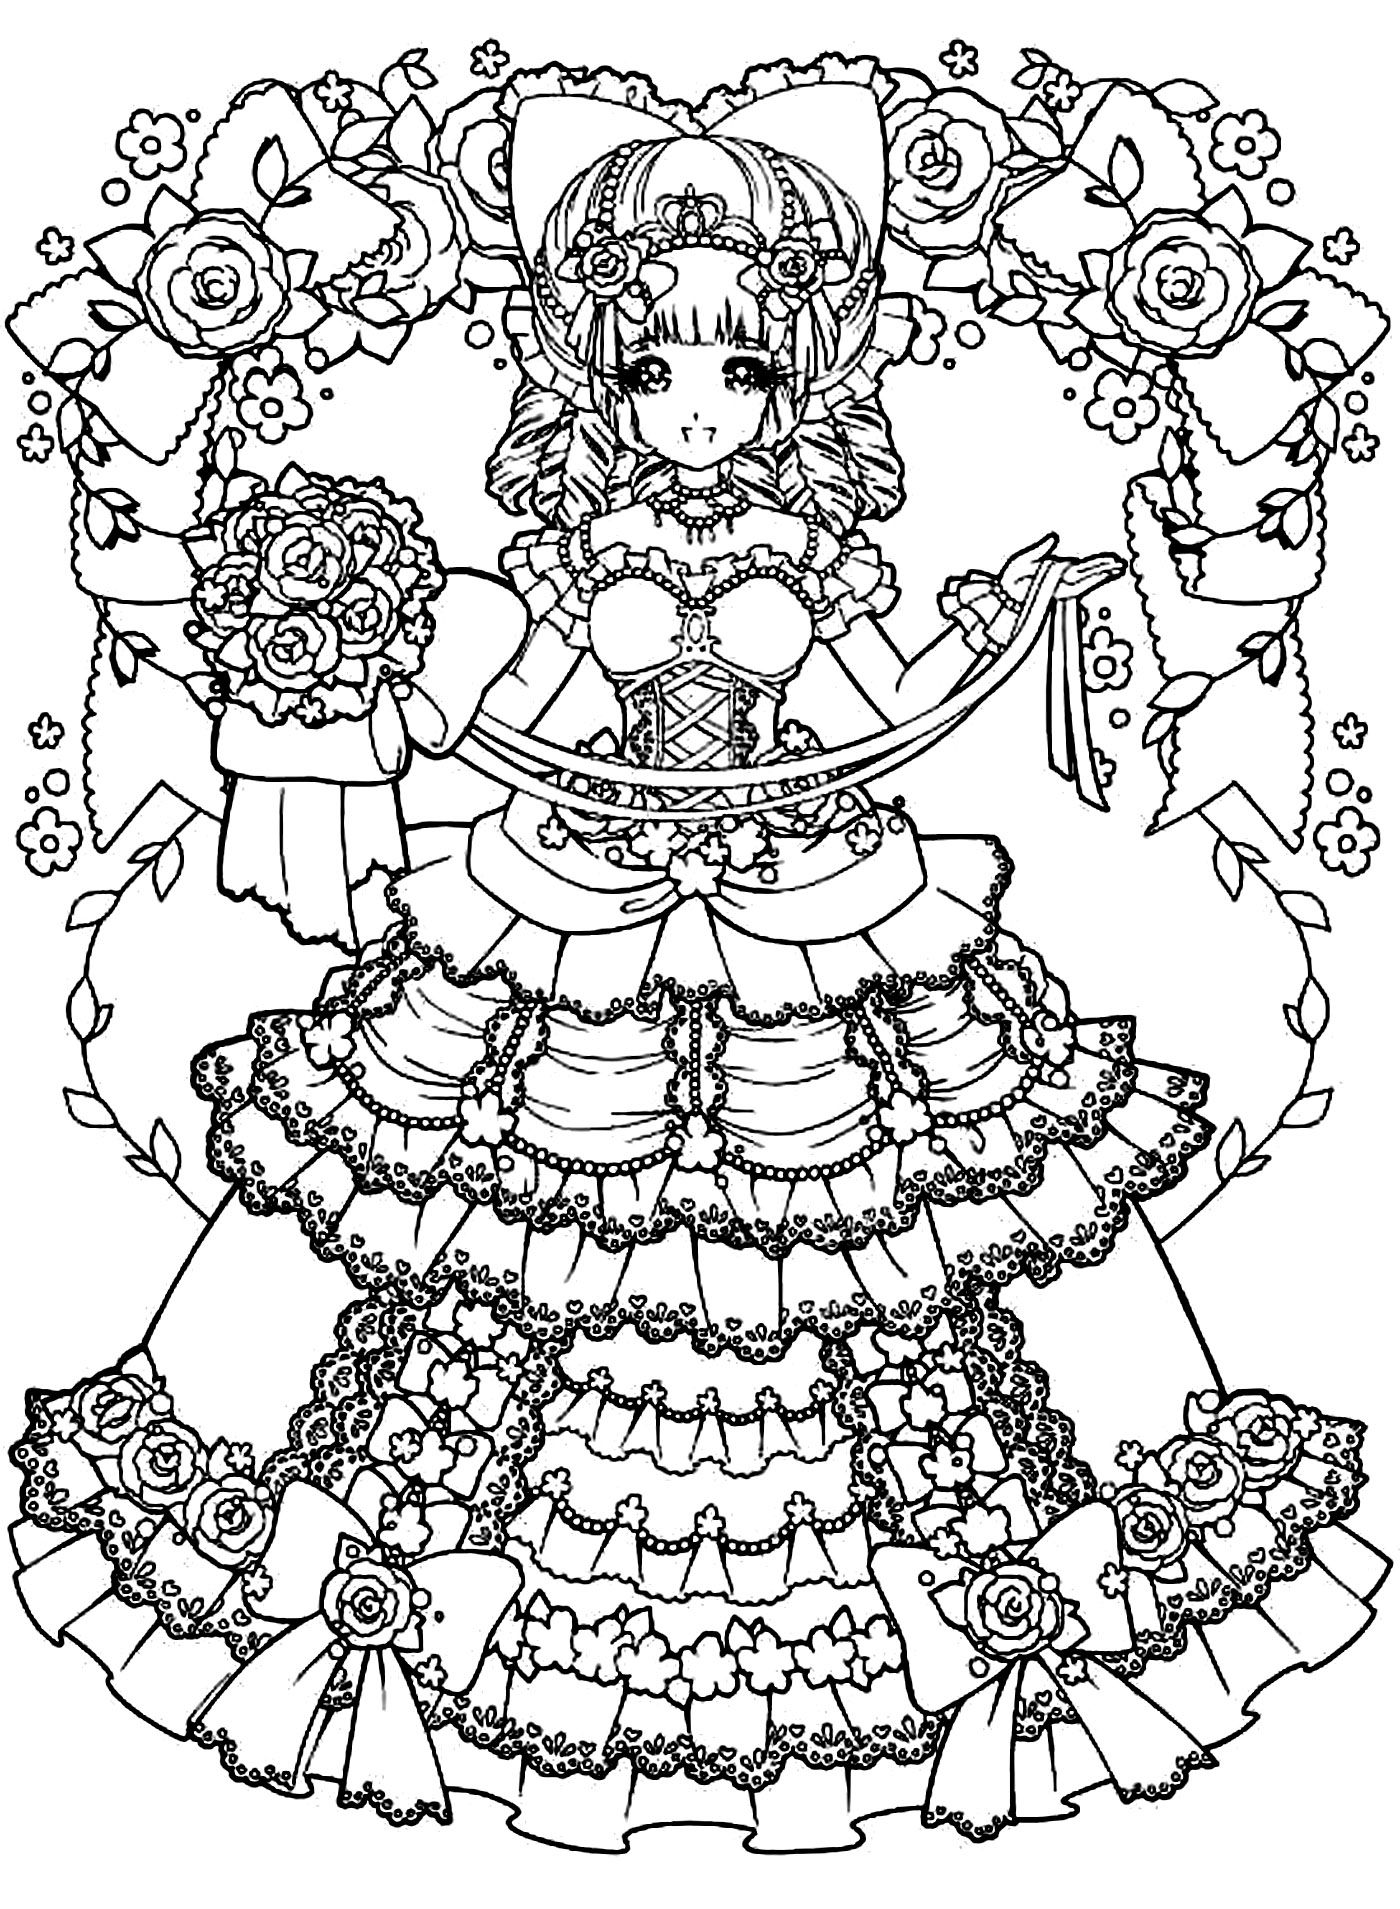 to print this free coloring page coloring back to childhood